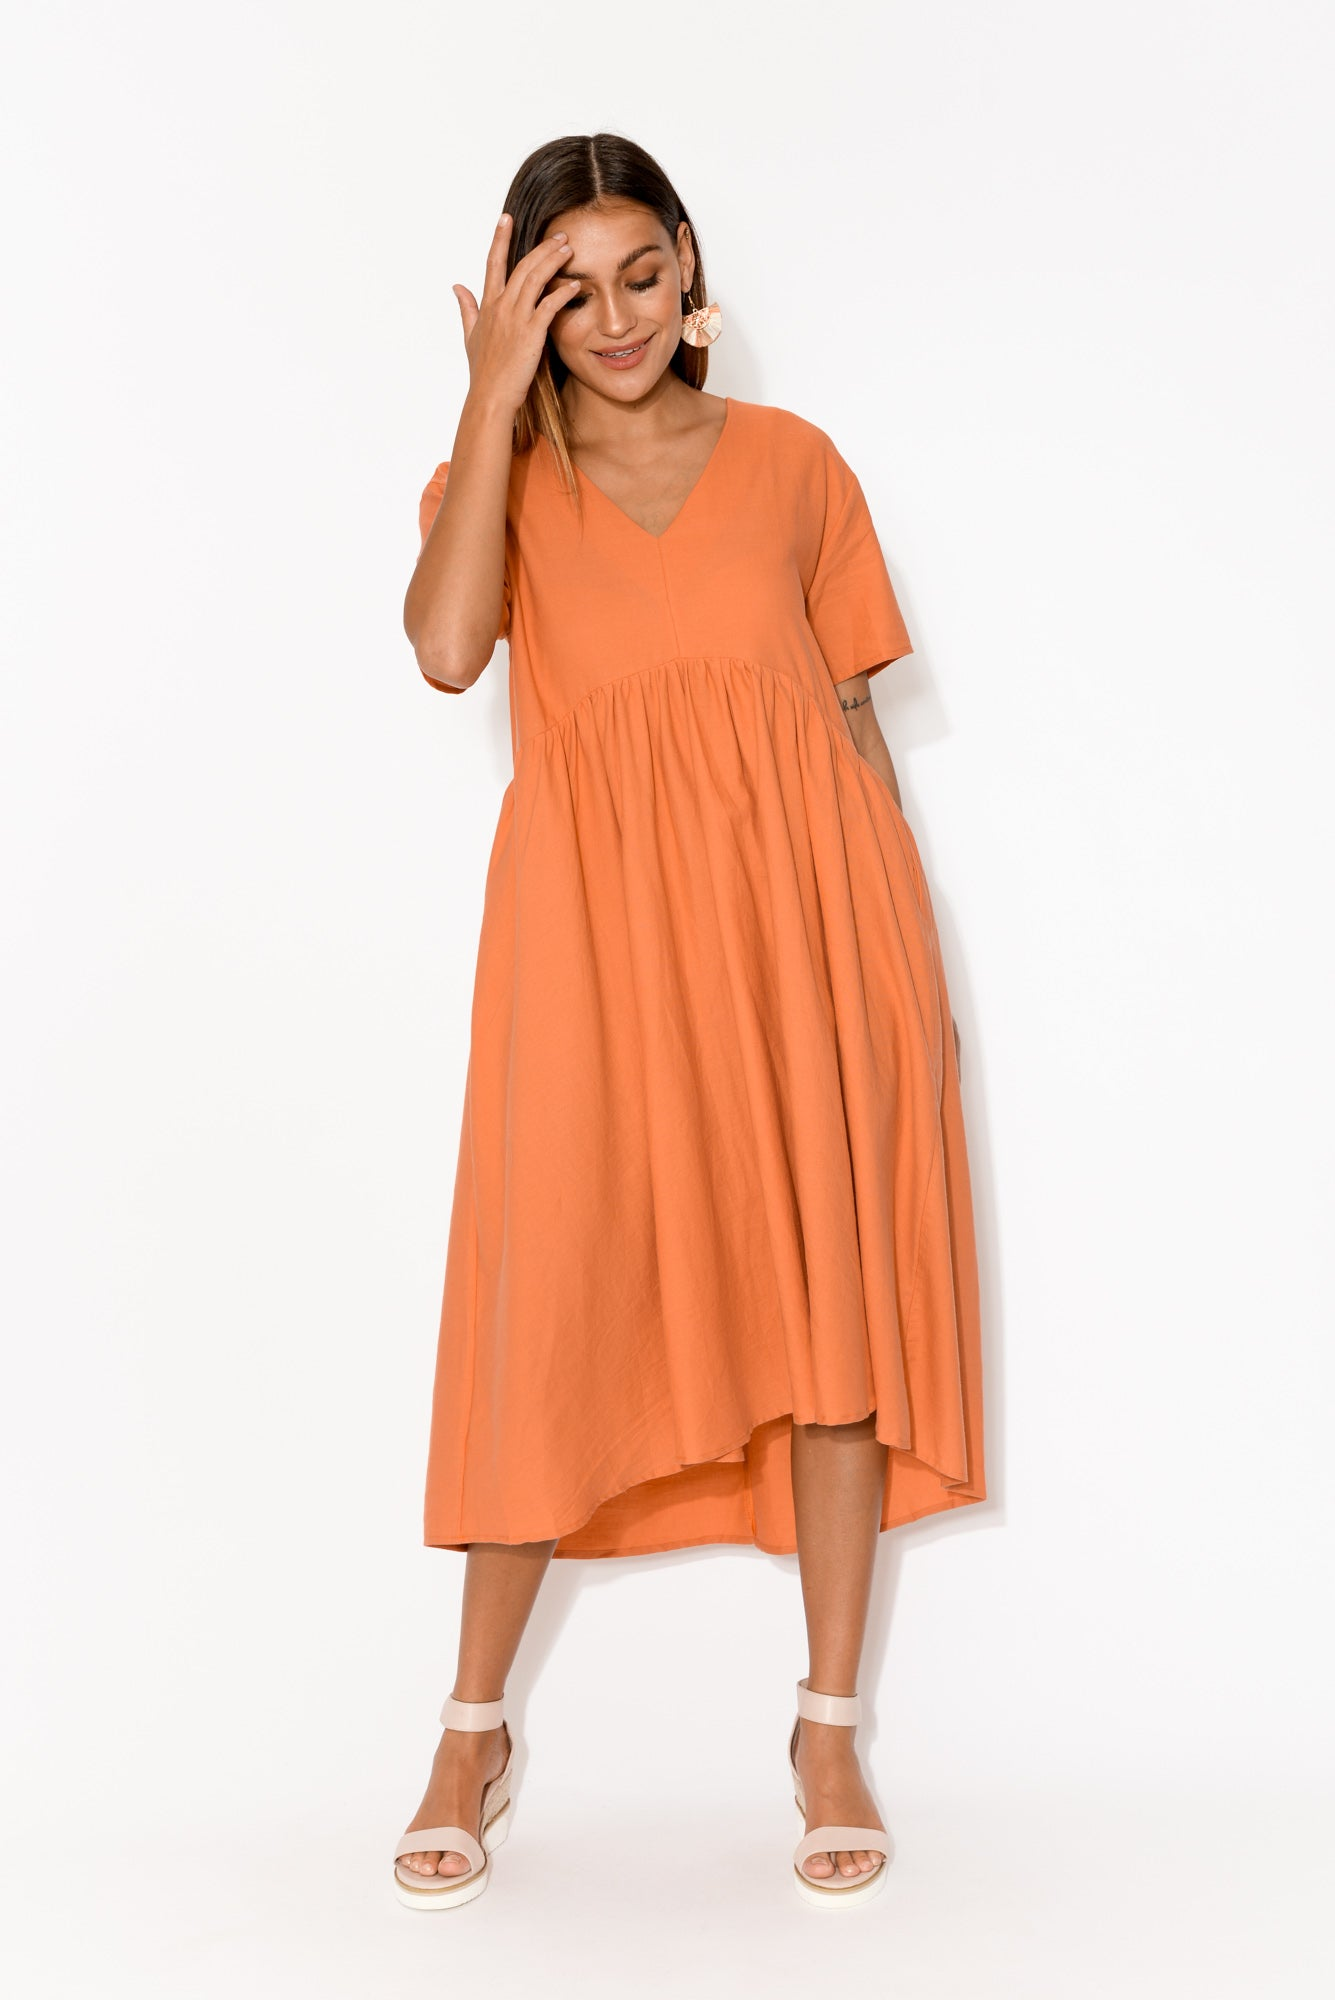 Wanda Coral Short Sleeve Cotton Dress